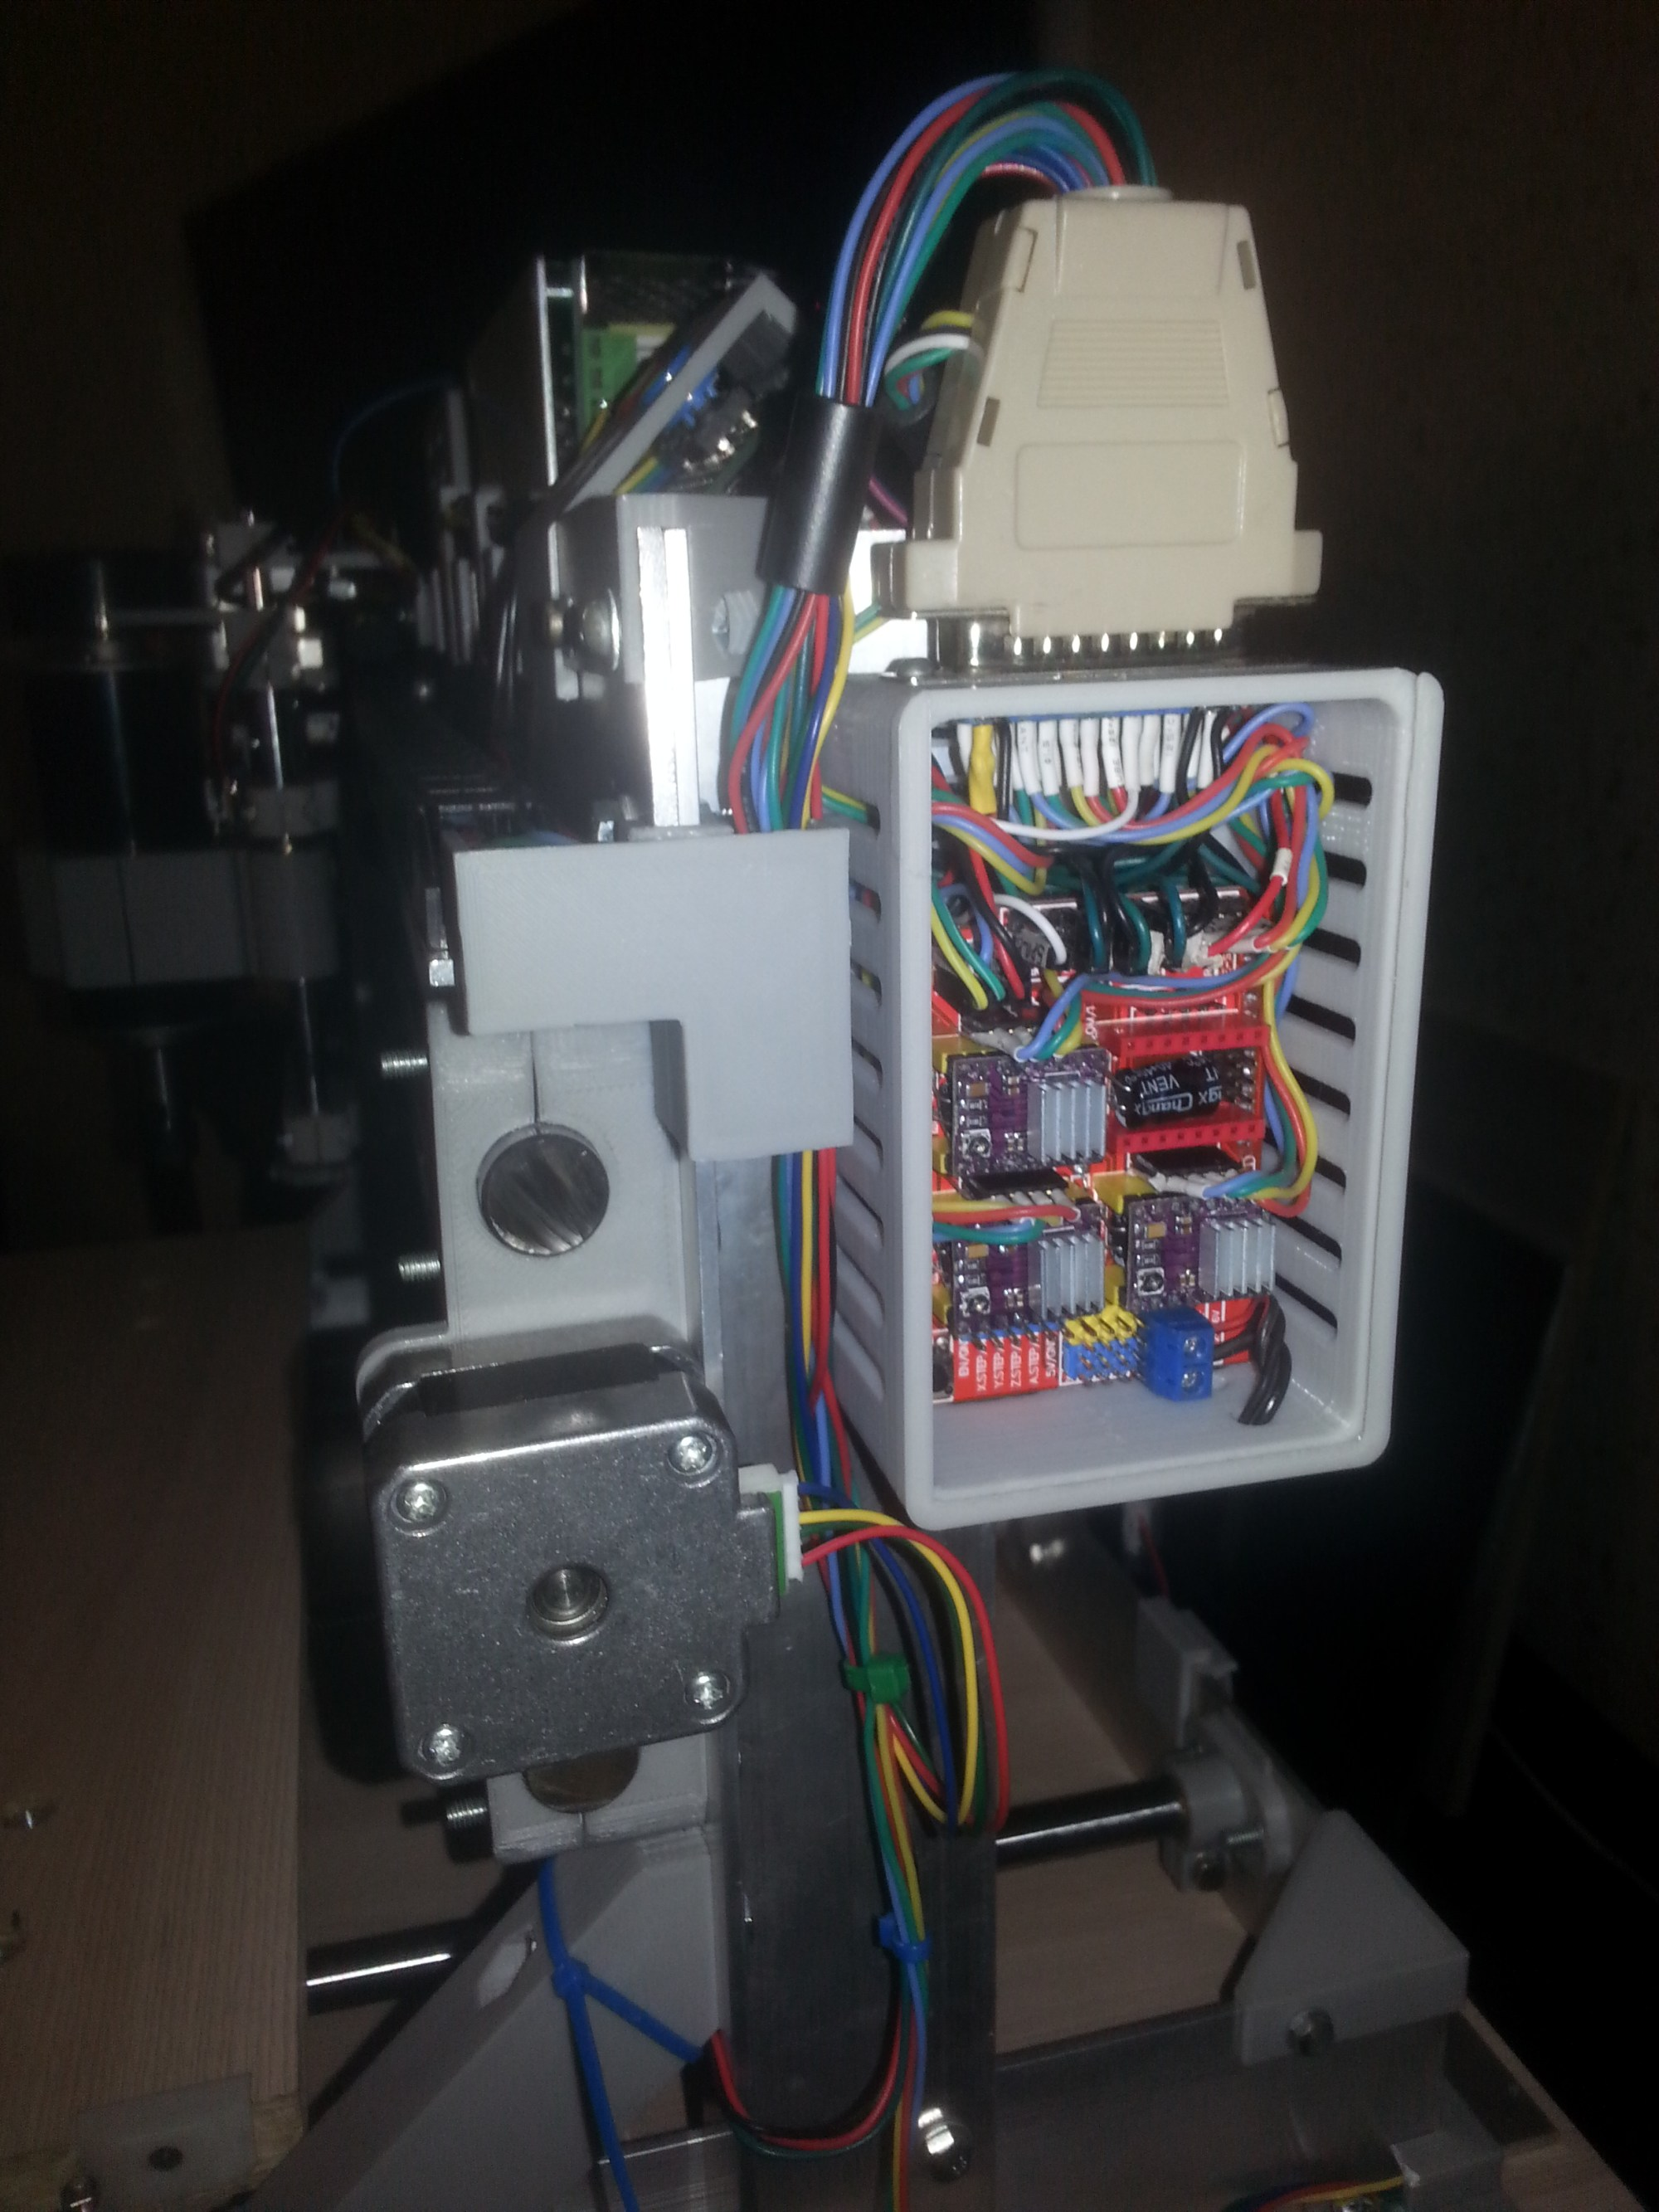 hight resolution of as promised i post pictures of electroconducting of my cnc arduino uno grbl shield all the wiring at the entrance to the controller i put in three